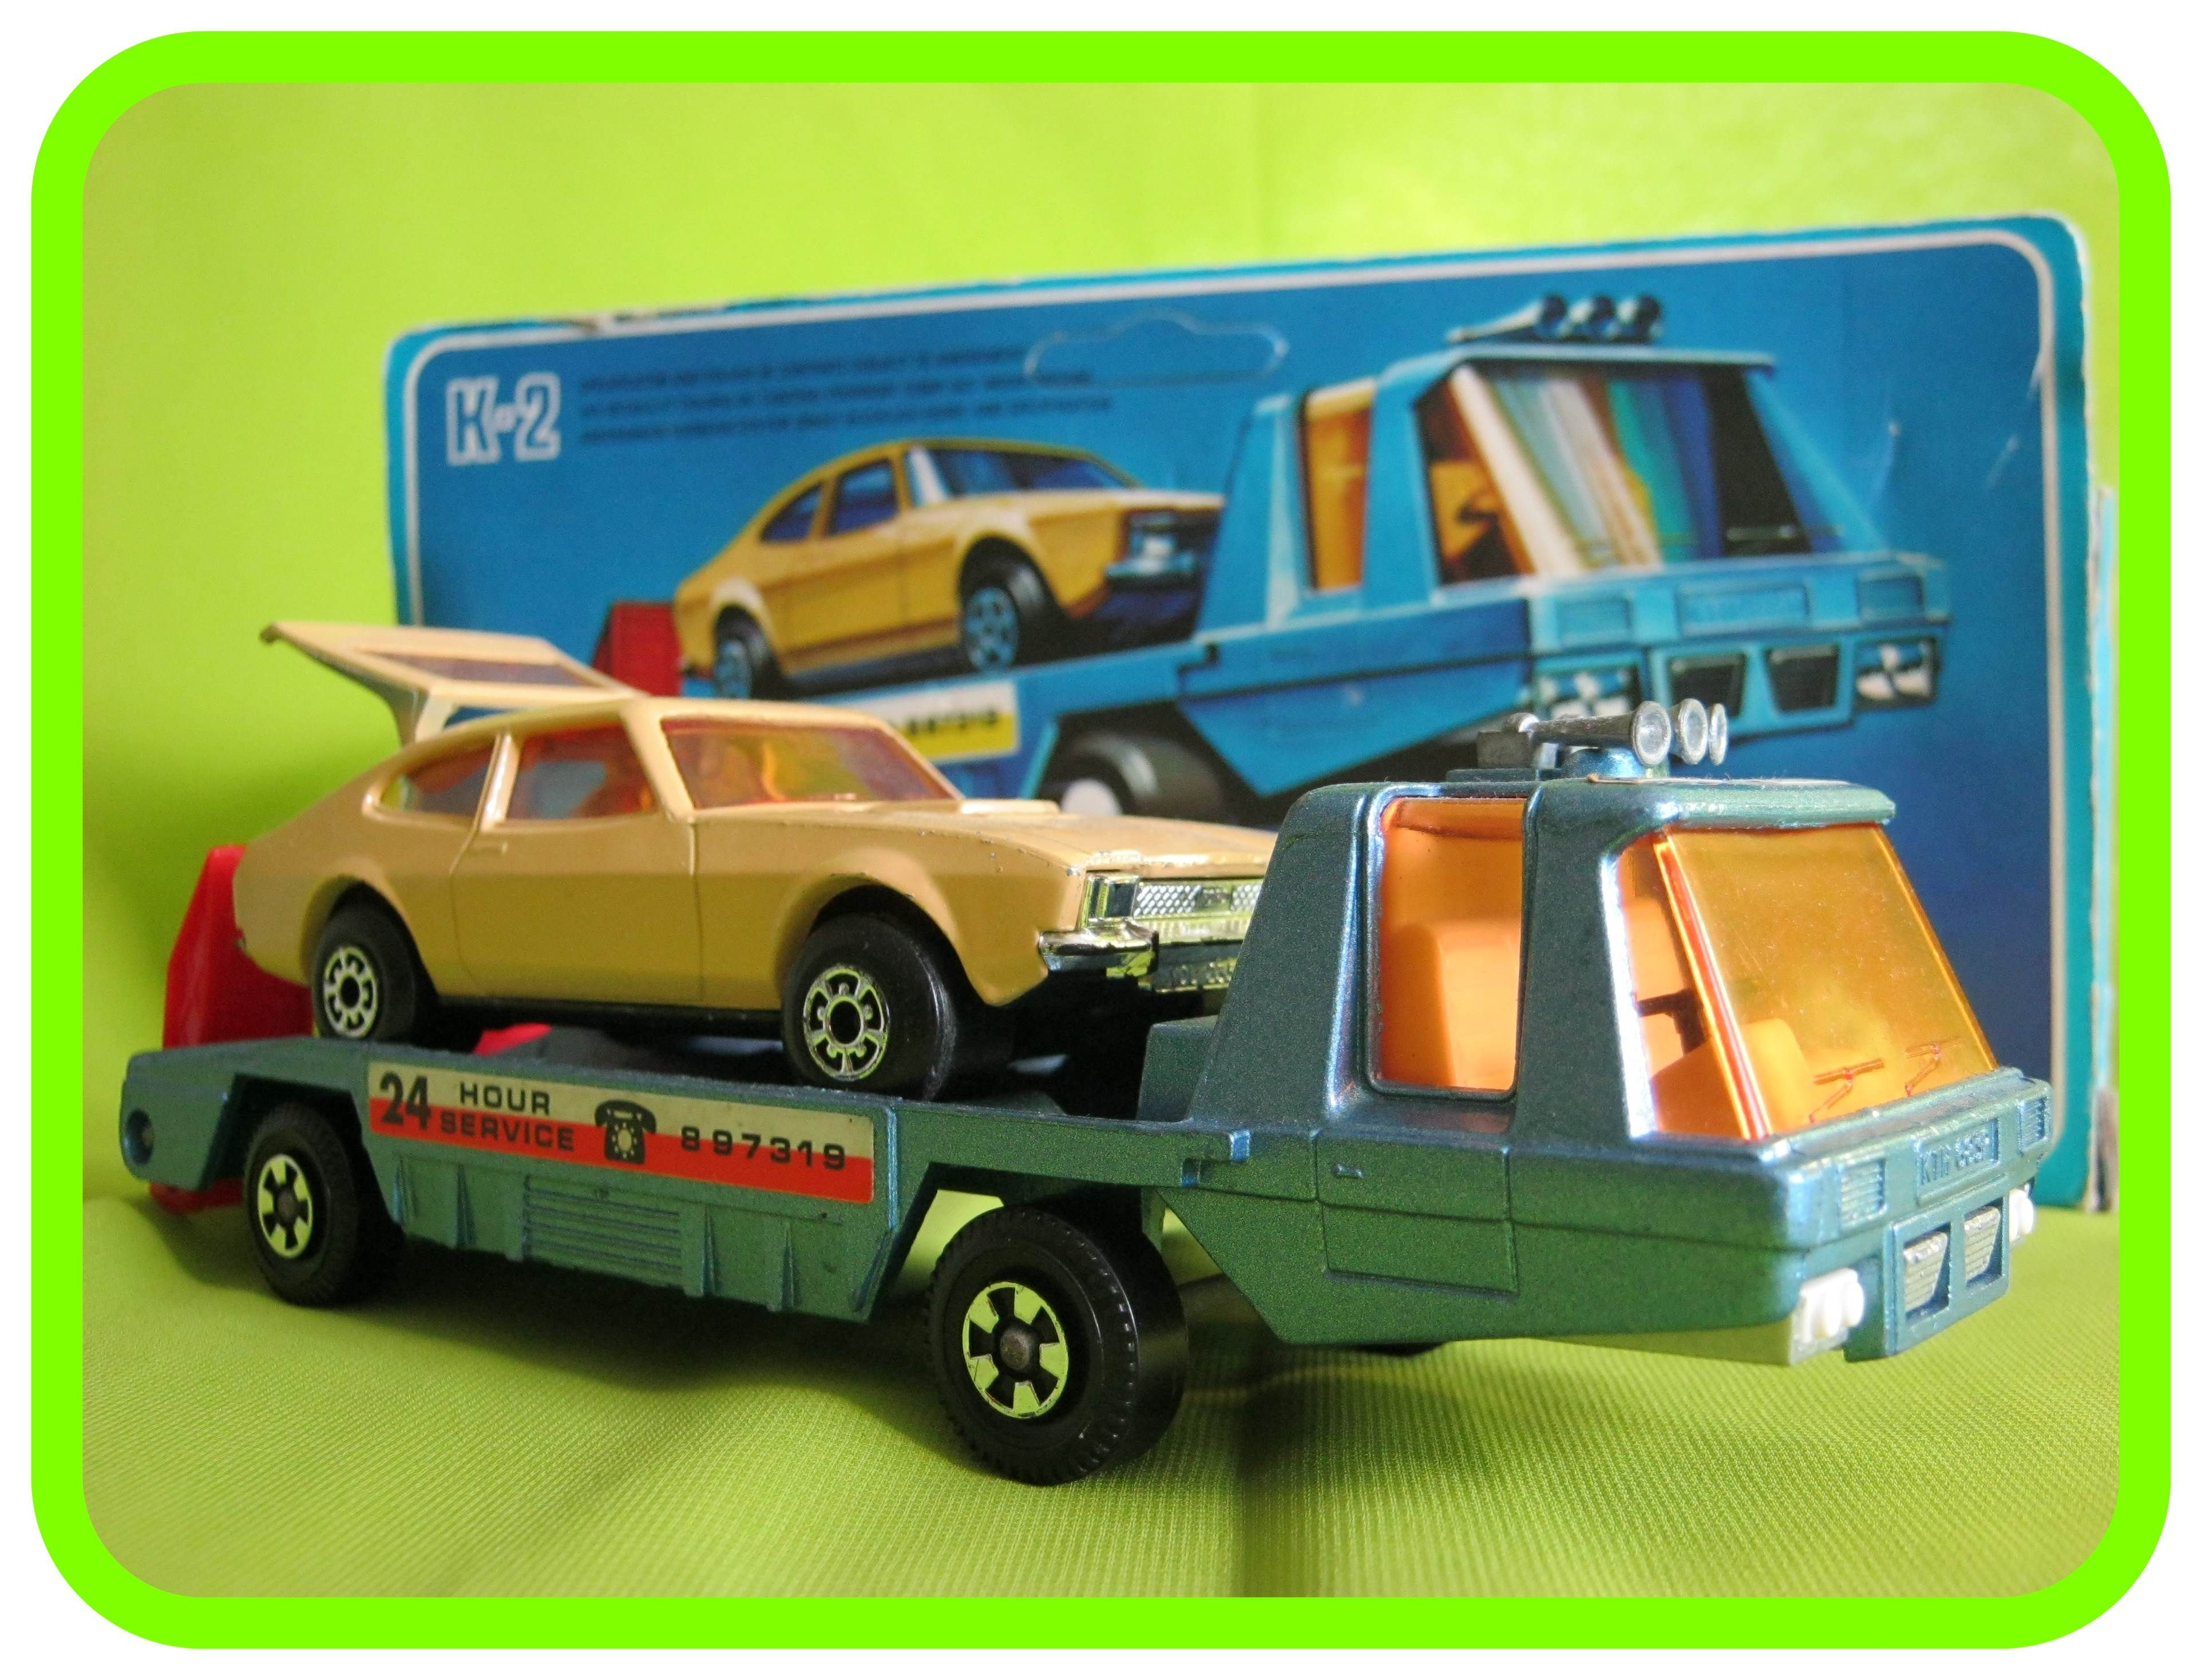 K2 Car Recovery Vehicle Blue With Ford Capri Toy Model Cars Matchbox Cars Toy Car